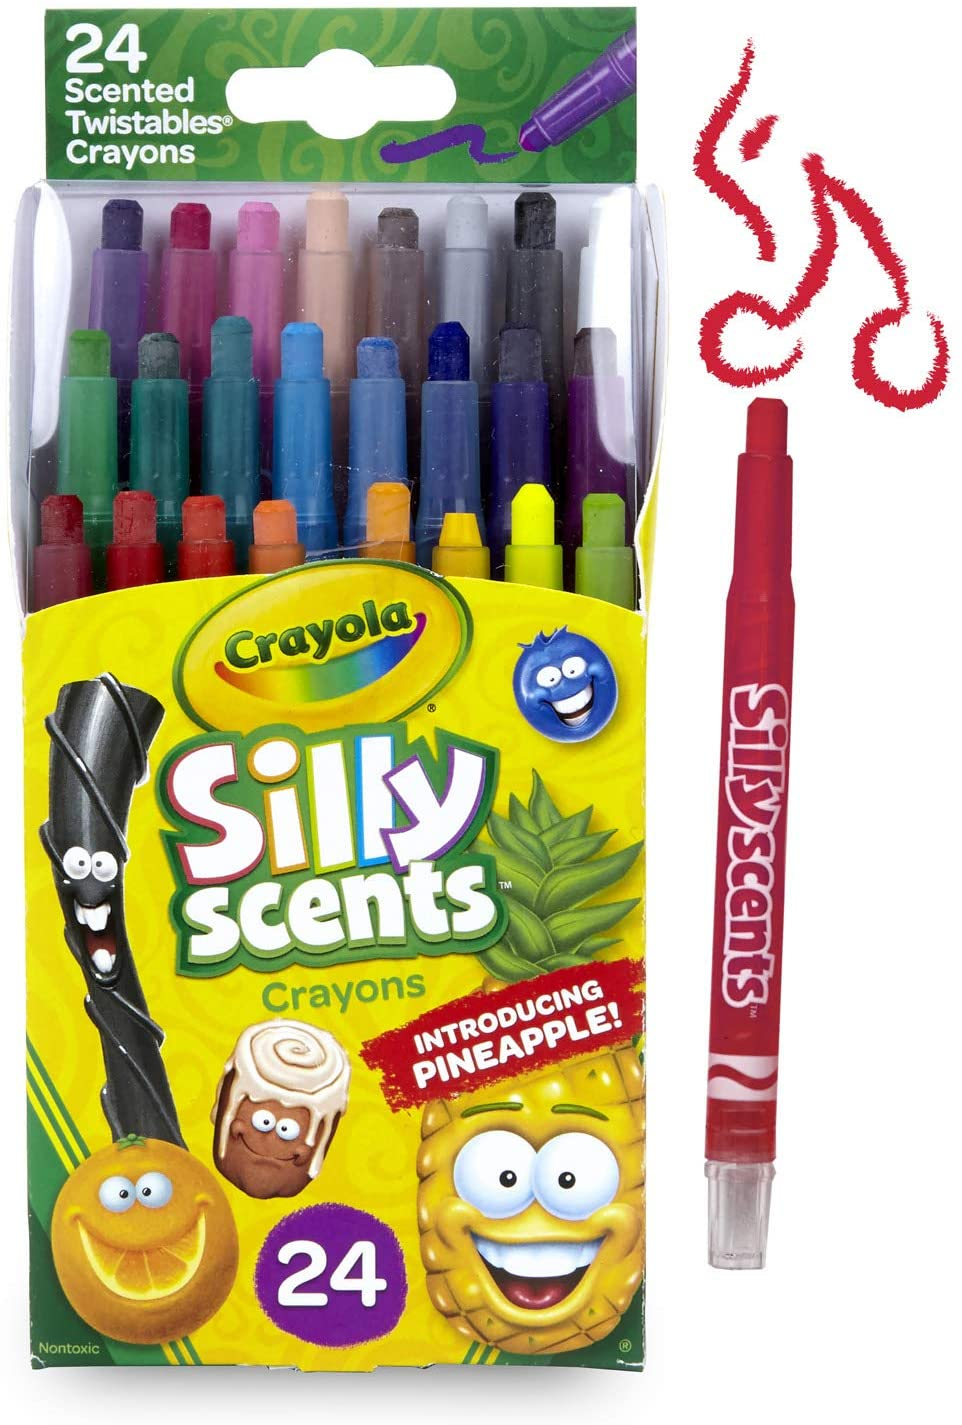 Silly Scent crayons stocking stuffer